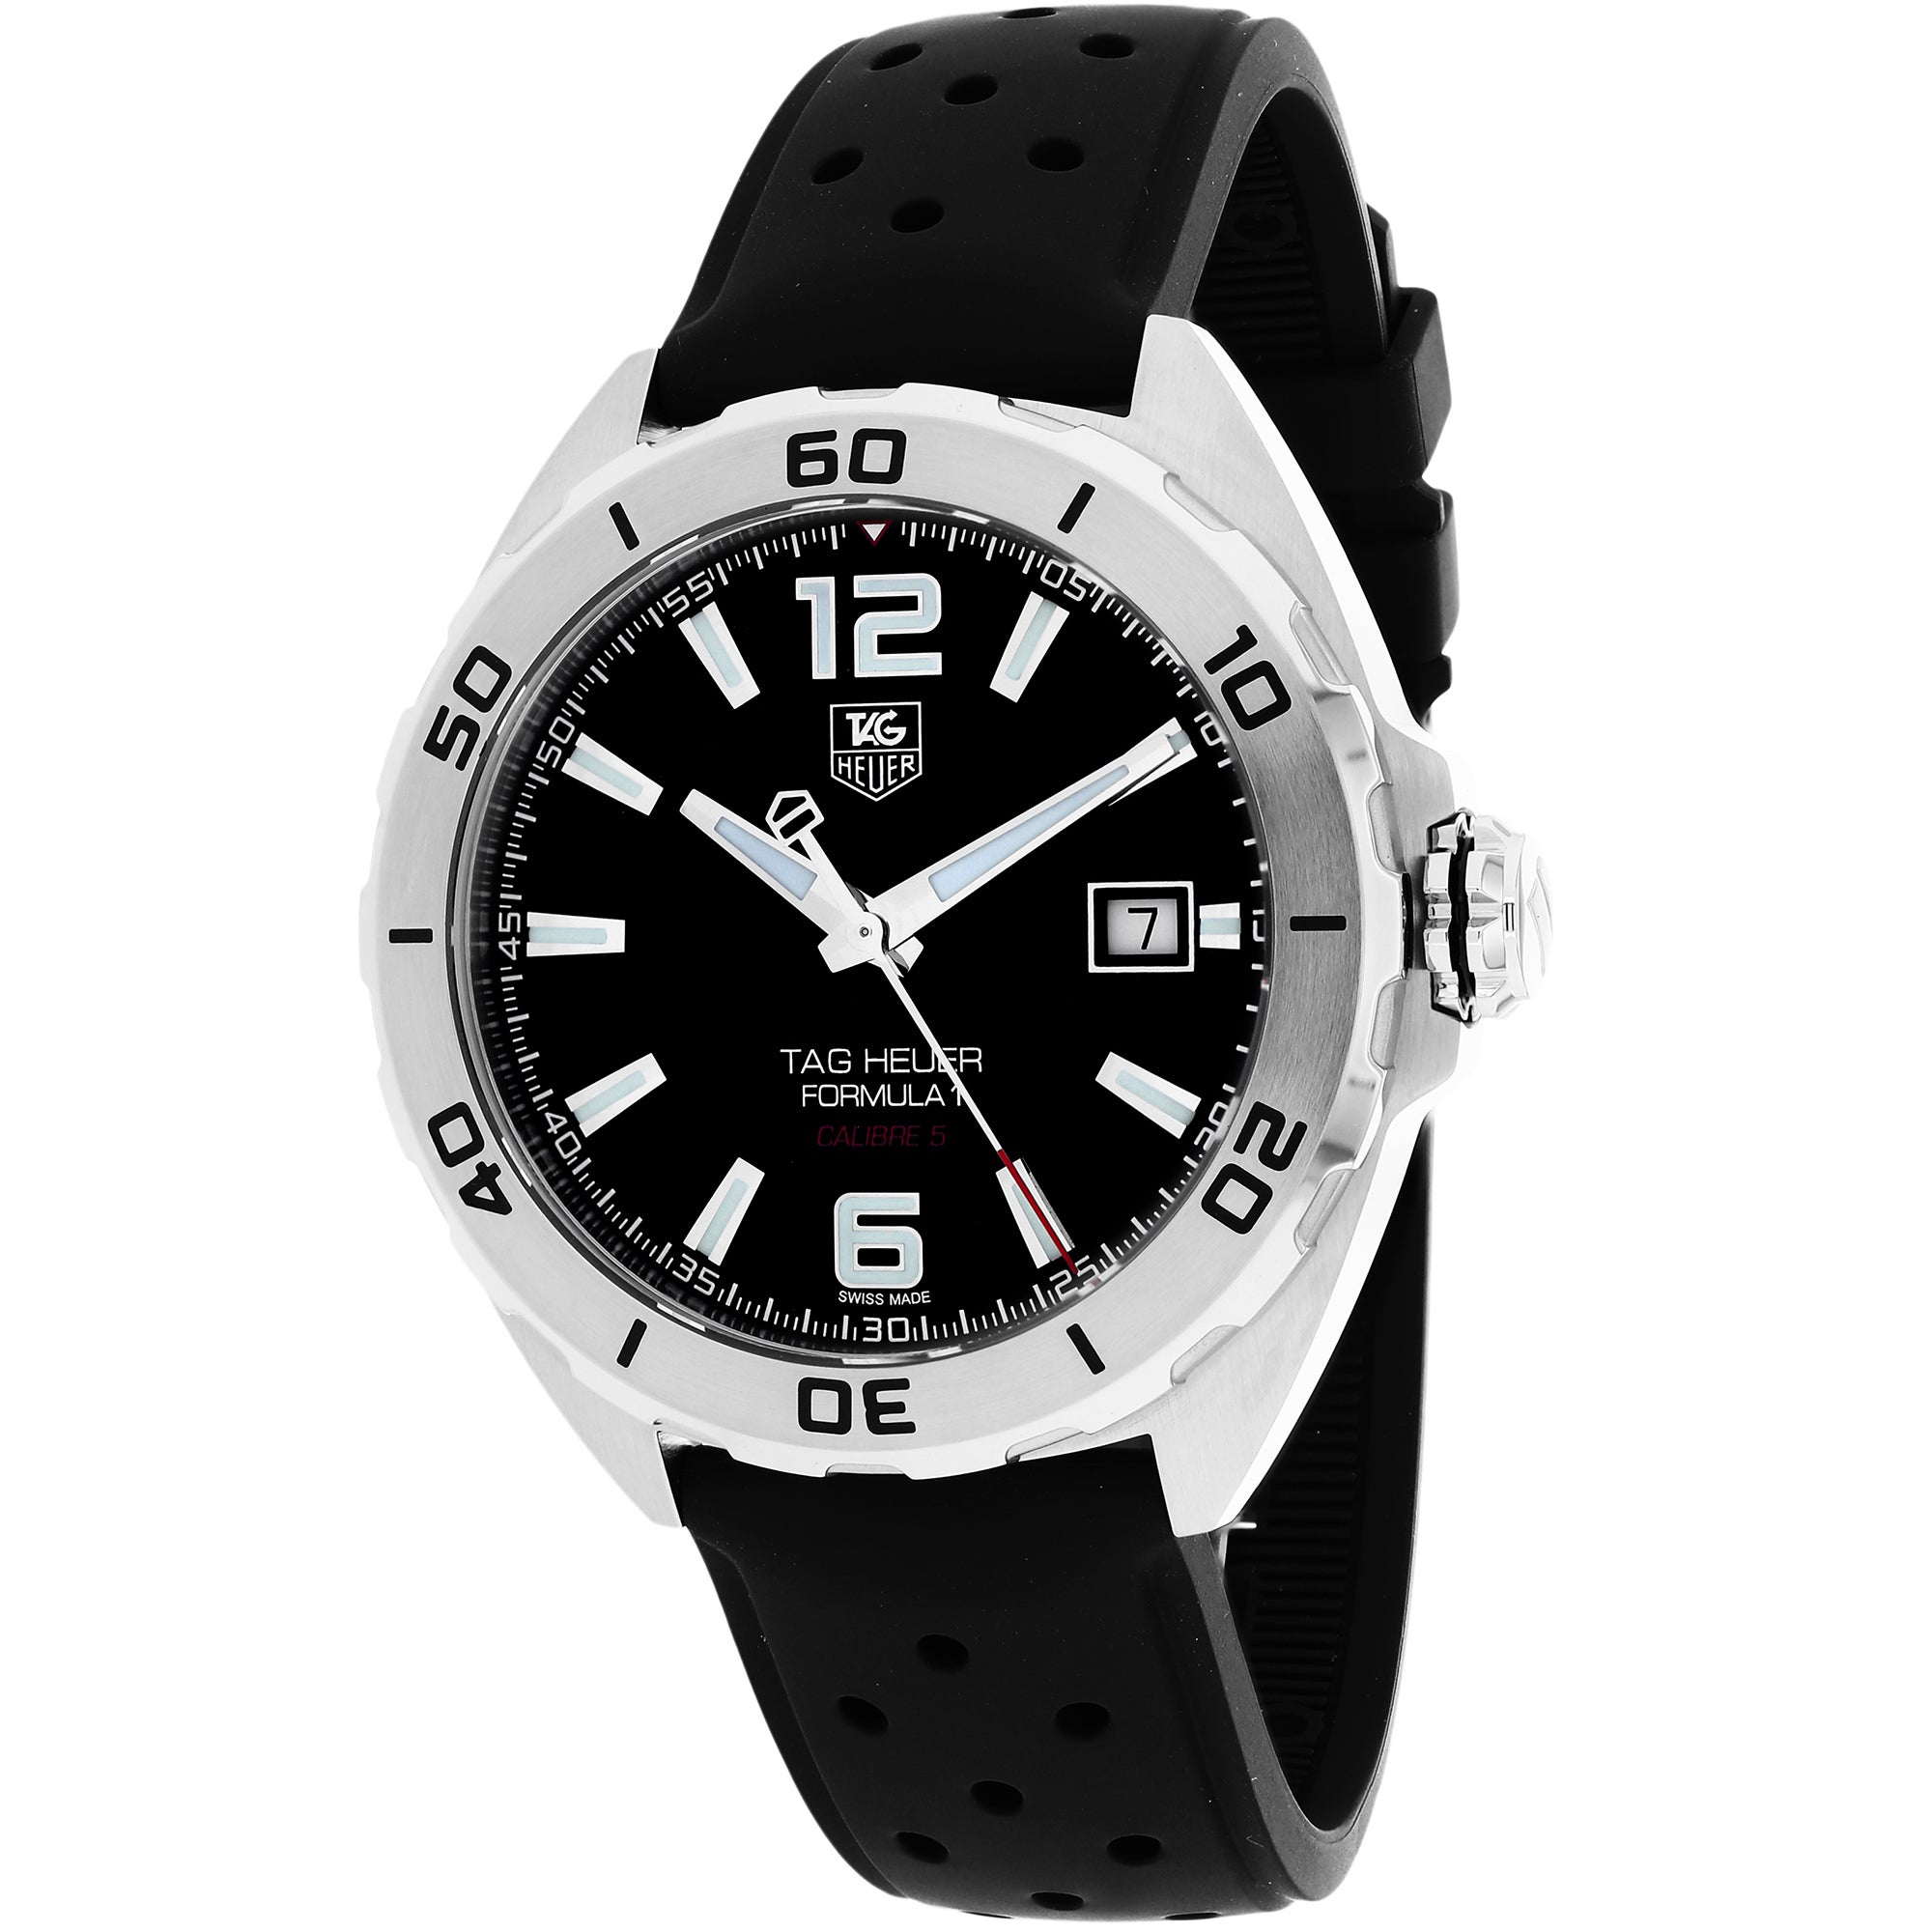 e2f434df7afb Shop Tag Heuer Men s WAZ2113.FT8023  Formula 1  Black Dial Black Rubber  Strap Automatic Watch - Free Shipping Today - Overstock - 9809506